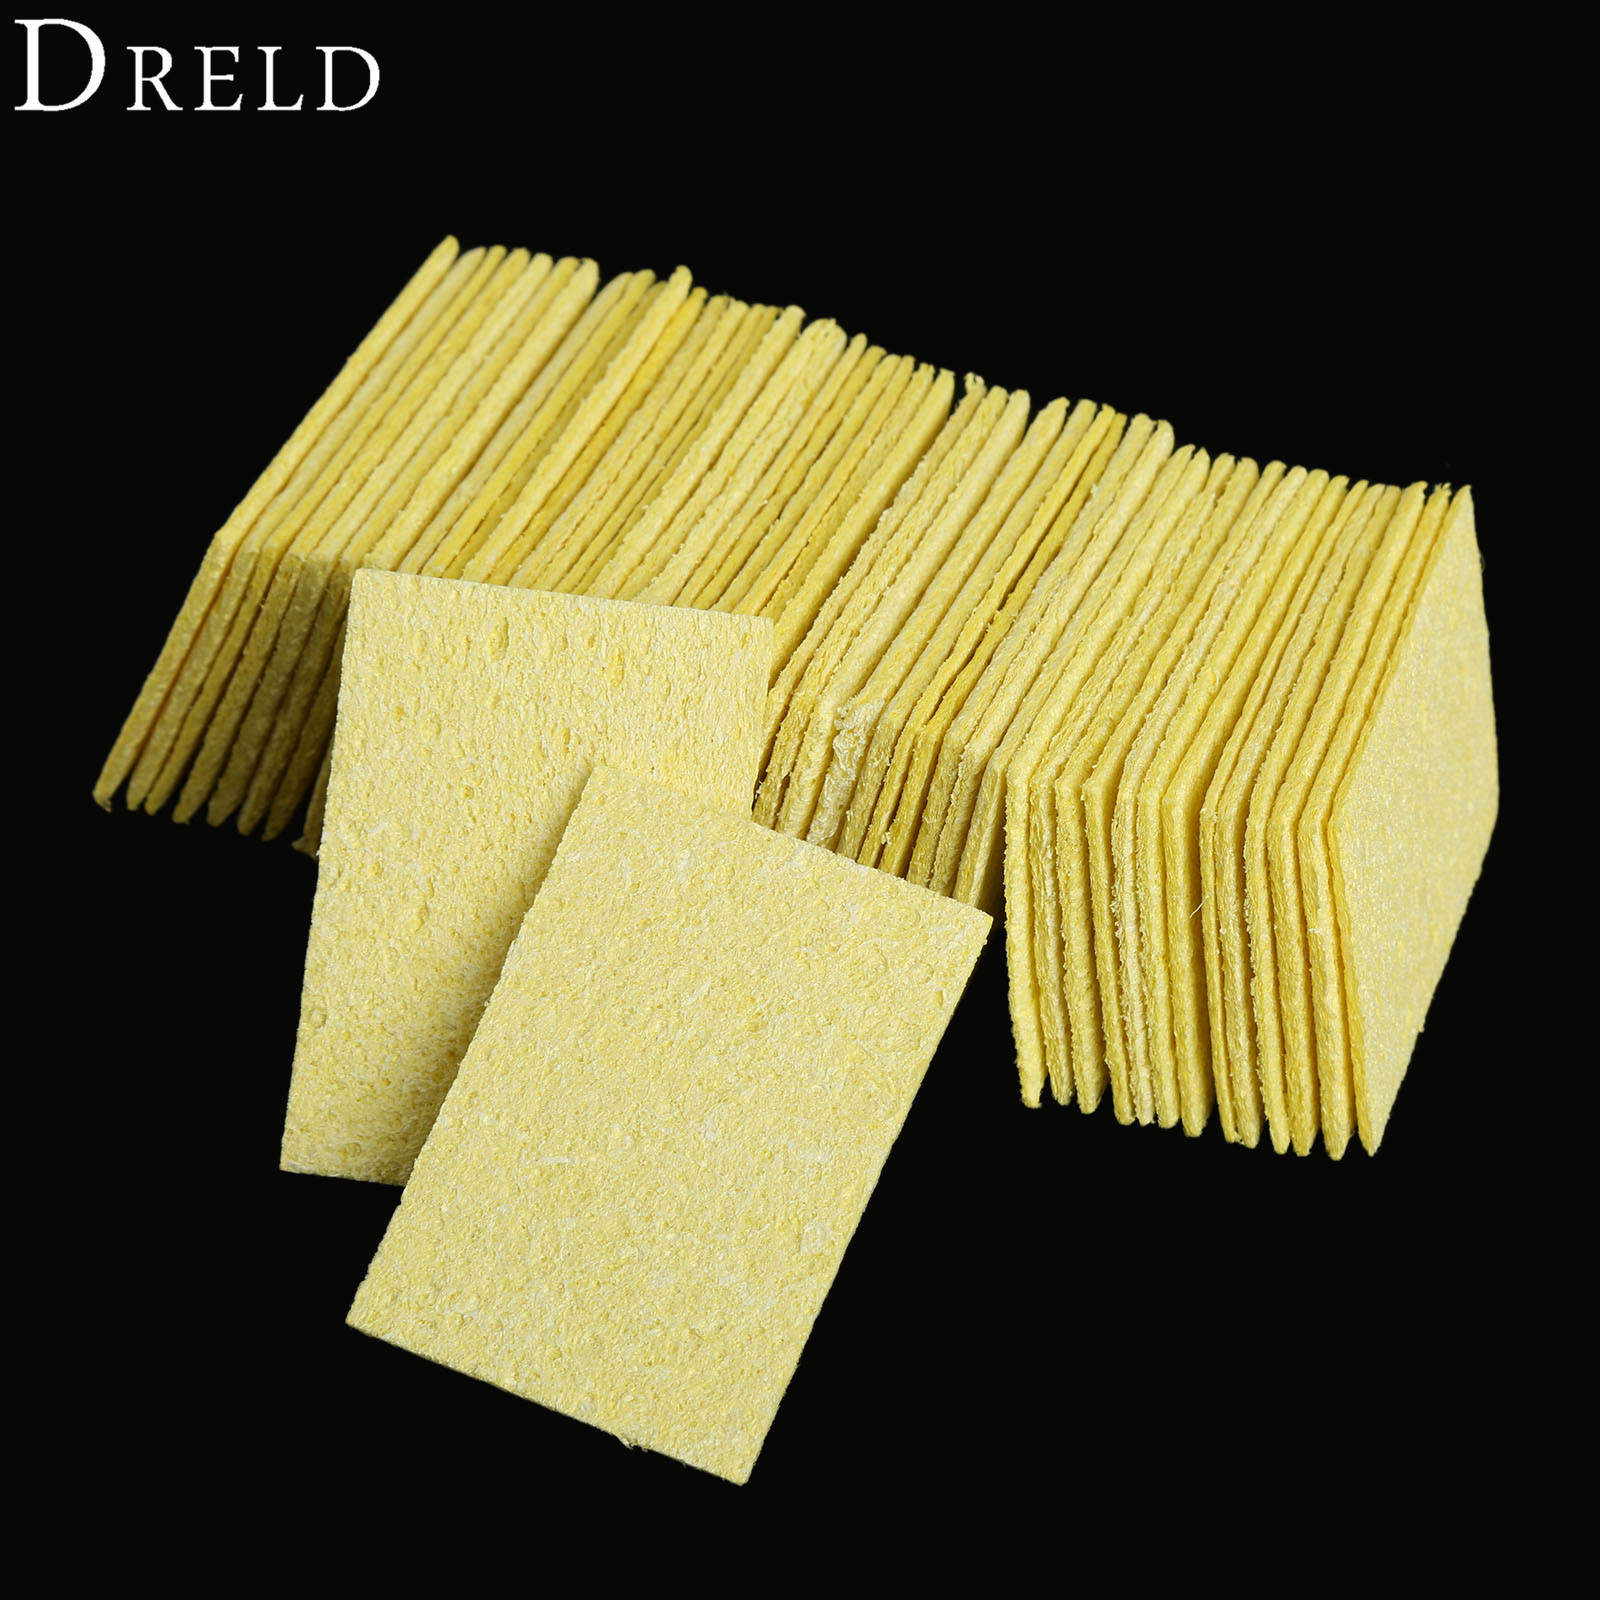 DRELD 50pcs Clean Tool High Temperature Enduring Condense Electric Welding Soldering Iron Cleaning Sponge Pads Yellow 50*35*2mm